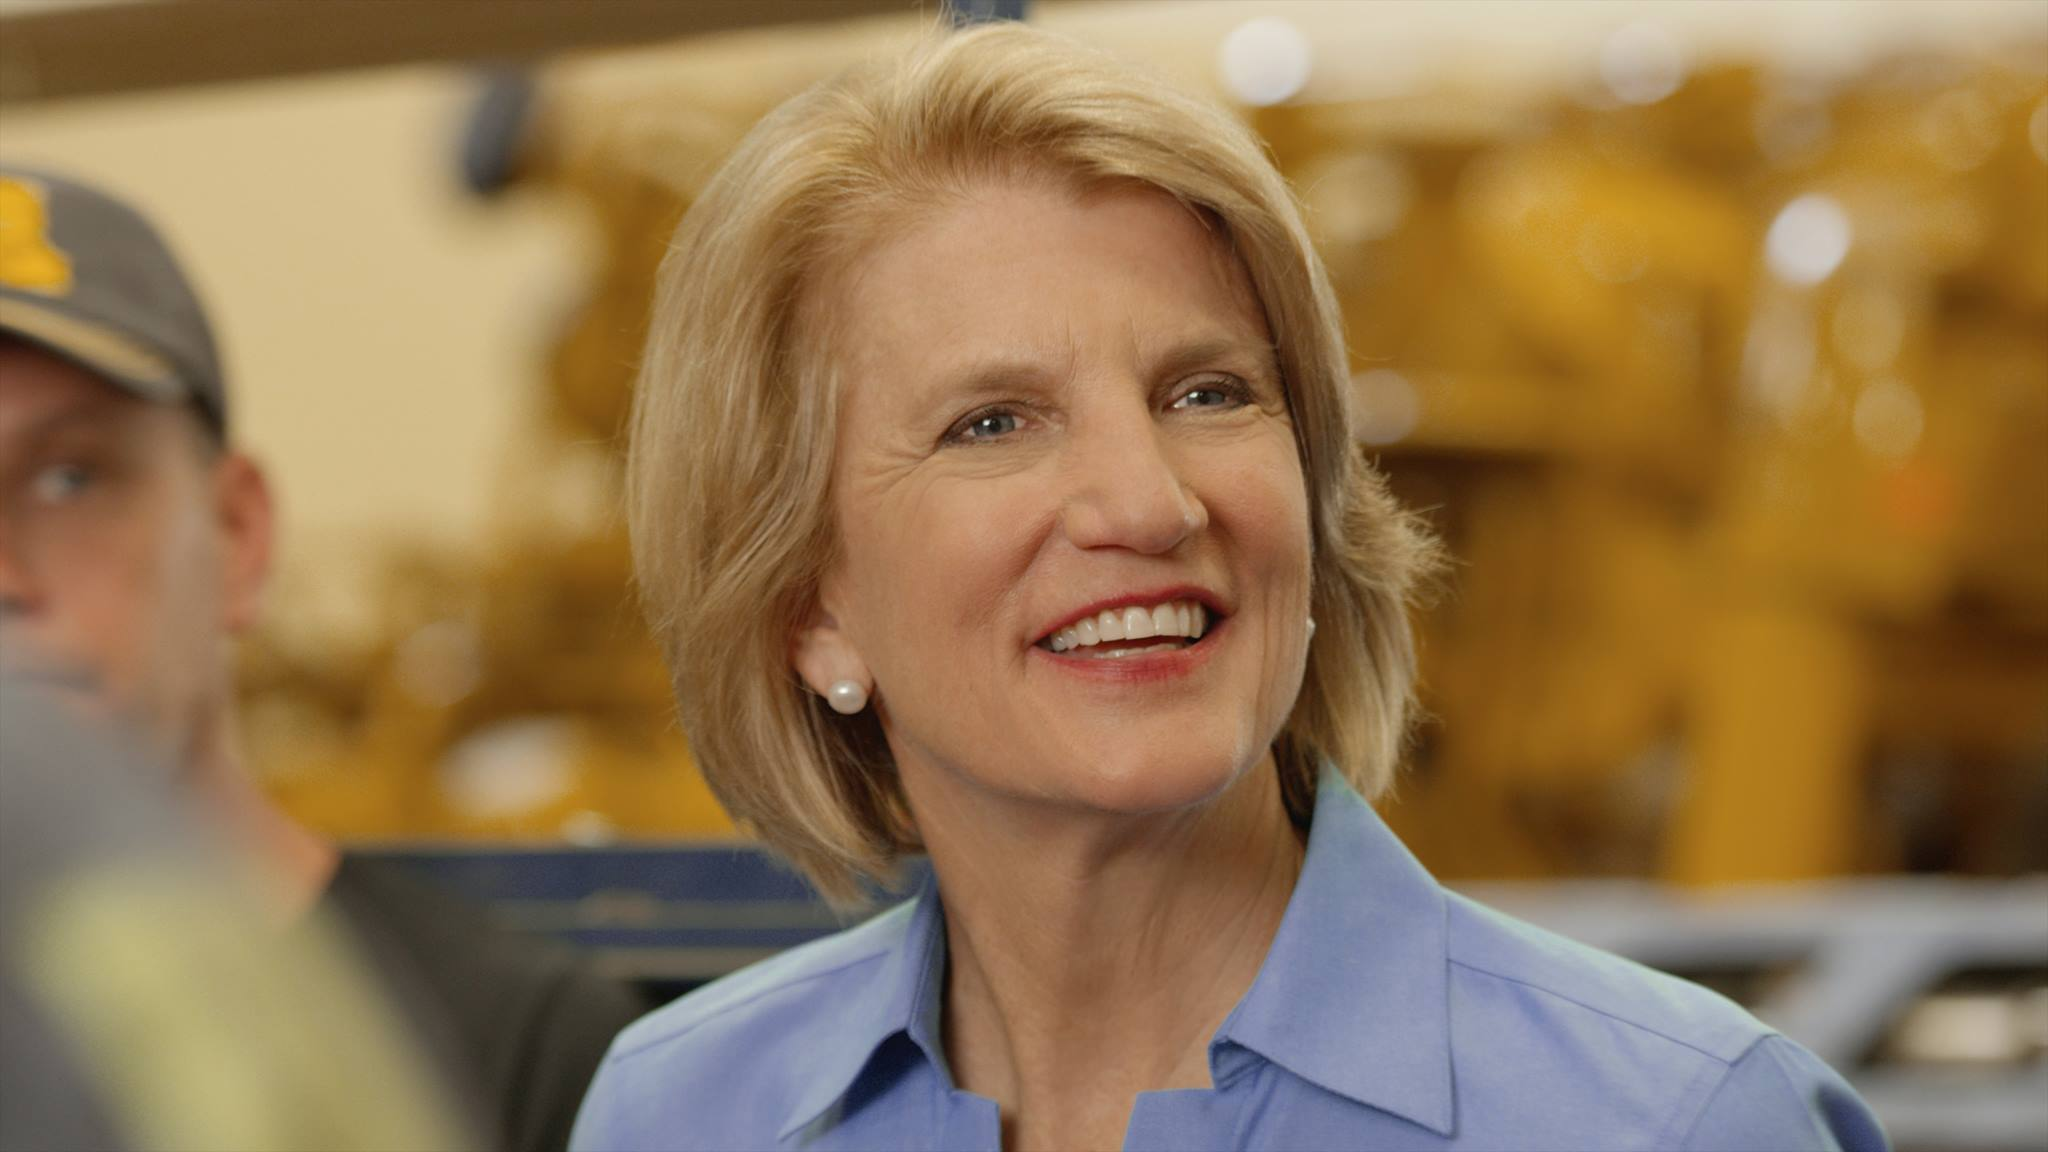 """""""As a former West Virginia Cherry Blossom Princess, I am excited to team up with my colleague Senator Lisa Murkowski as co-chairs for this wonderful tradition,"""" said Senator Capito. """"I hope these young women will take full advantage of all the program has to offer and have a wonderful time taking in our nation's Capital and forming new friendships. I offer my congratulations to this year's representatives and wish them the best during this exciting celebration."""""""